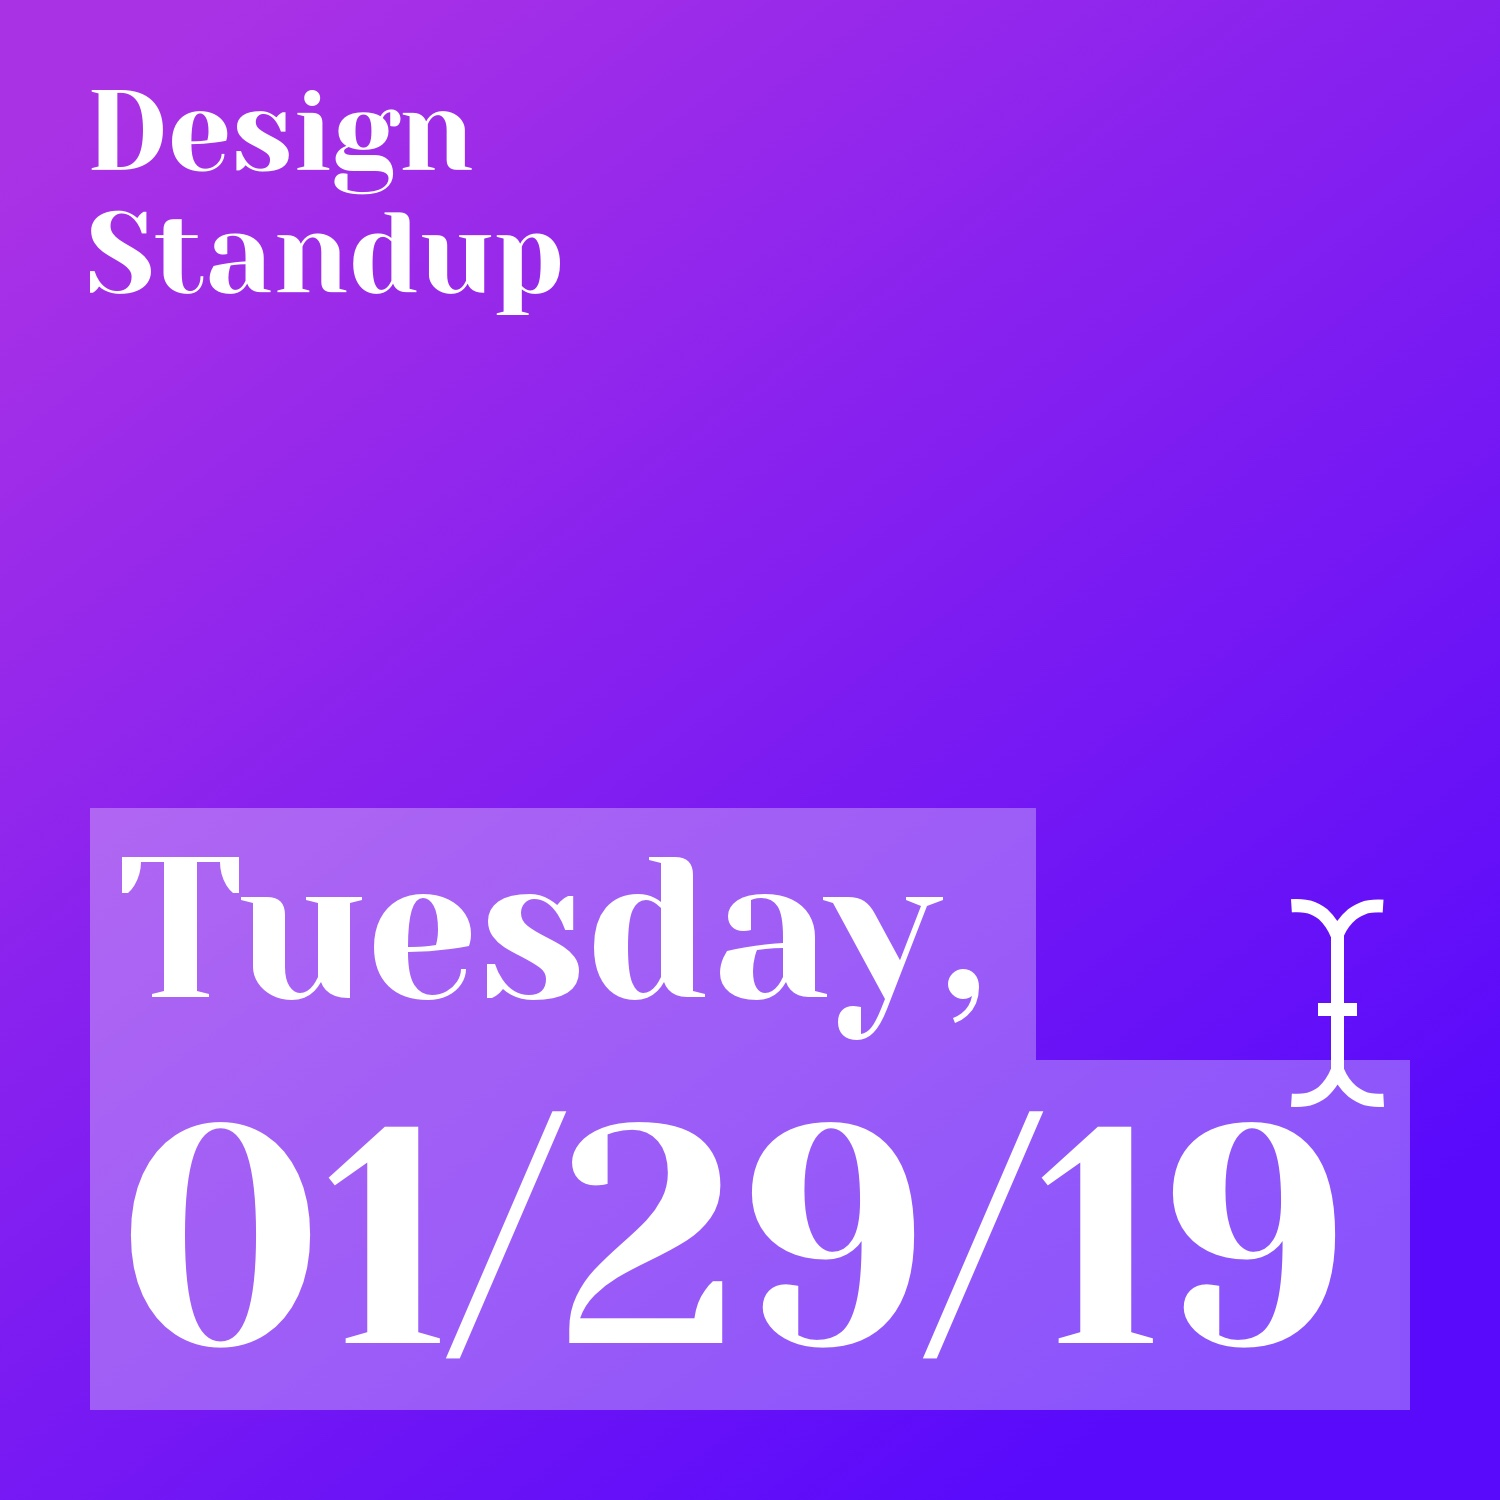 #009: [Part 3] The State of UX in 2019 by Fabricio Teixeira and Caio Braga of UX Collective